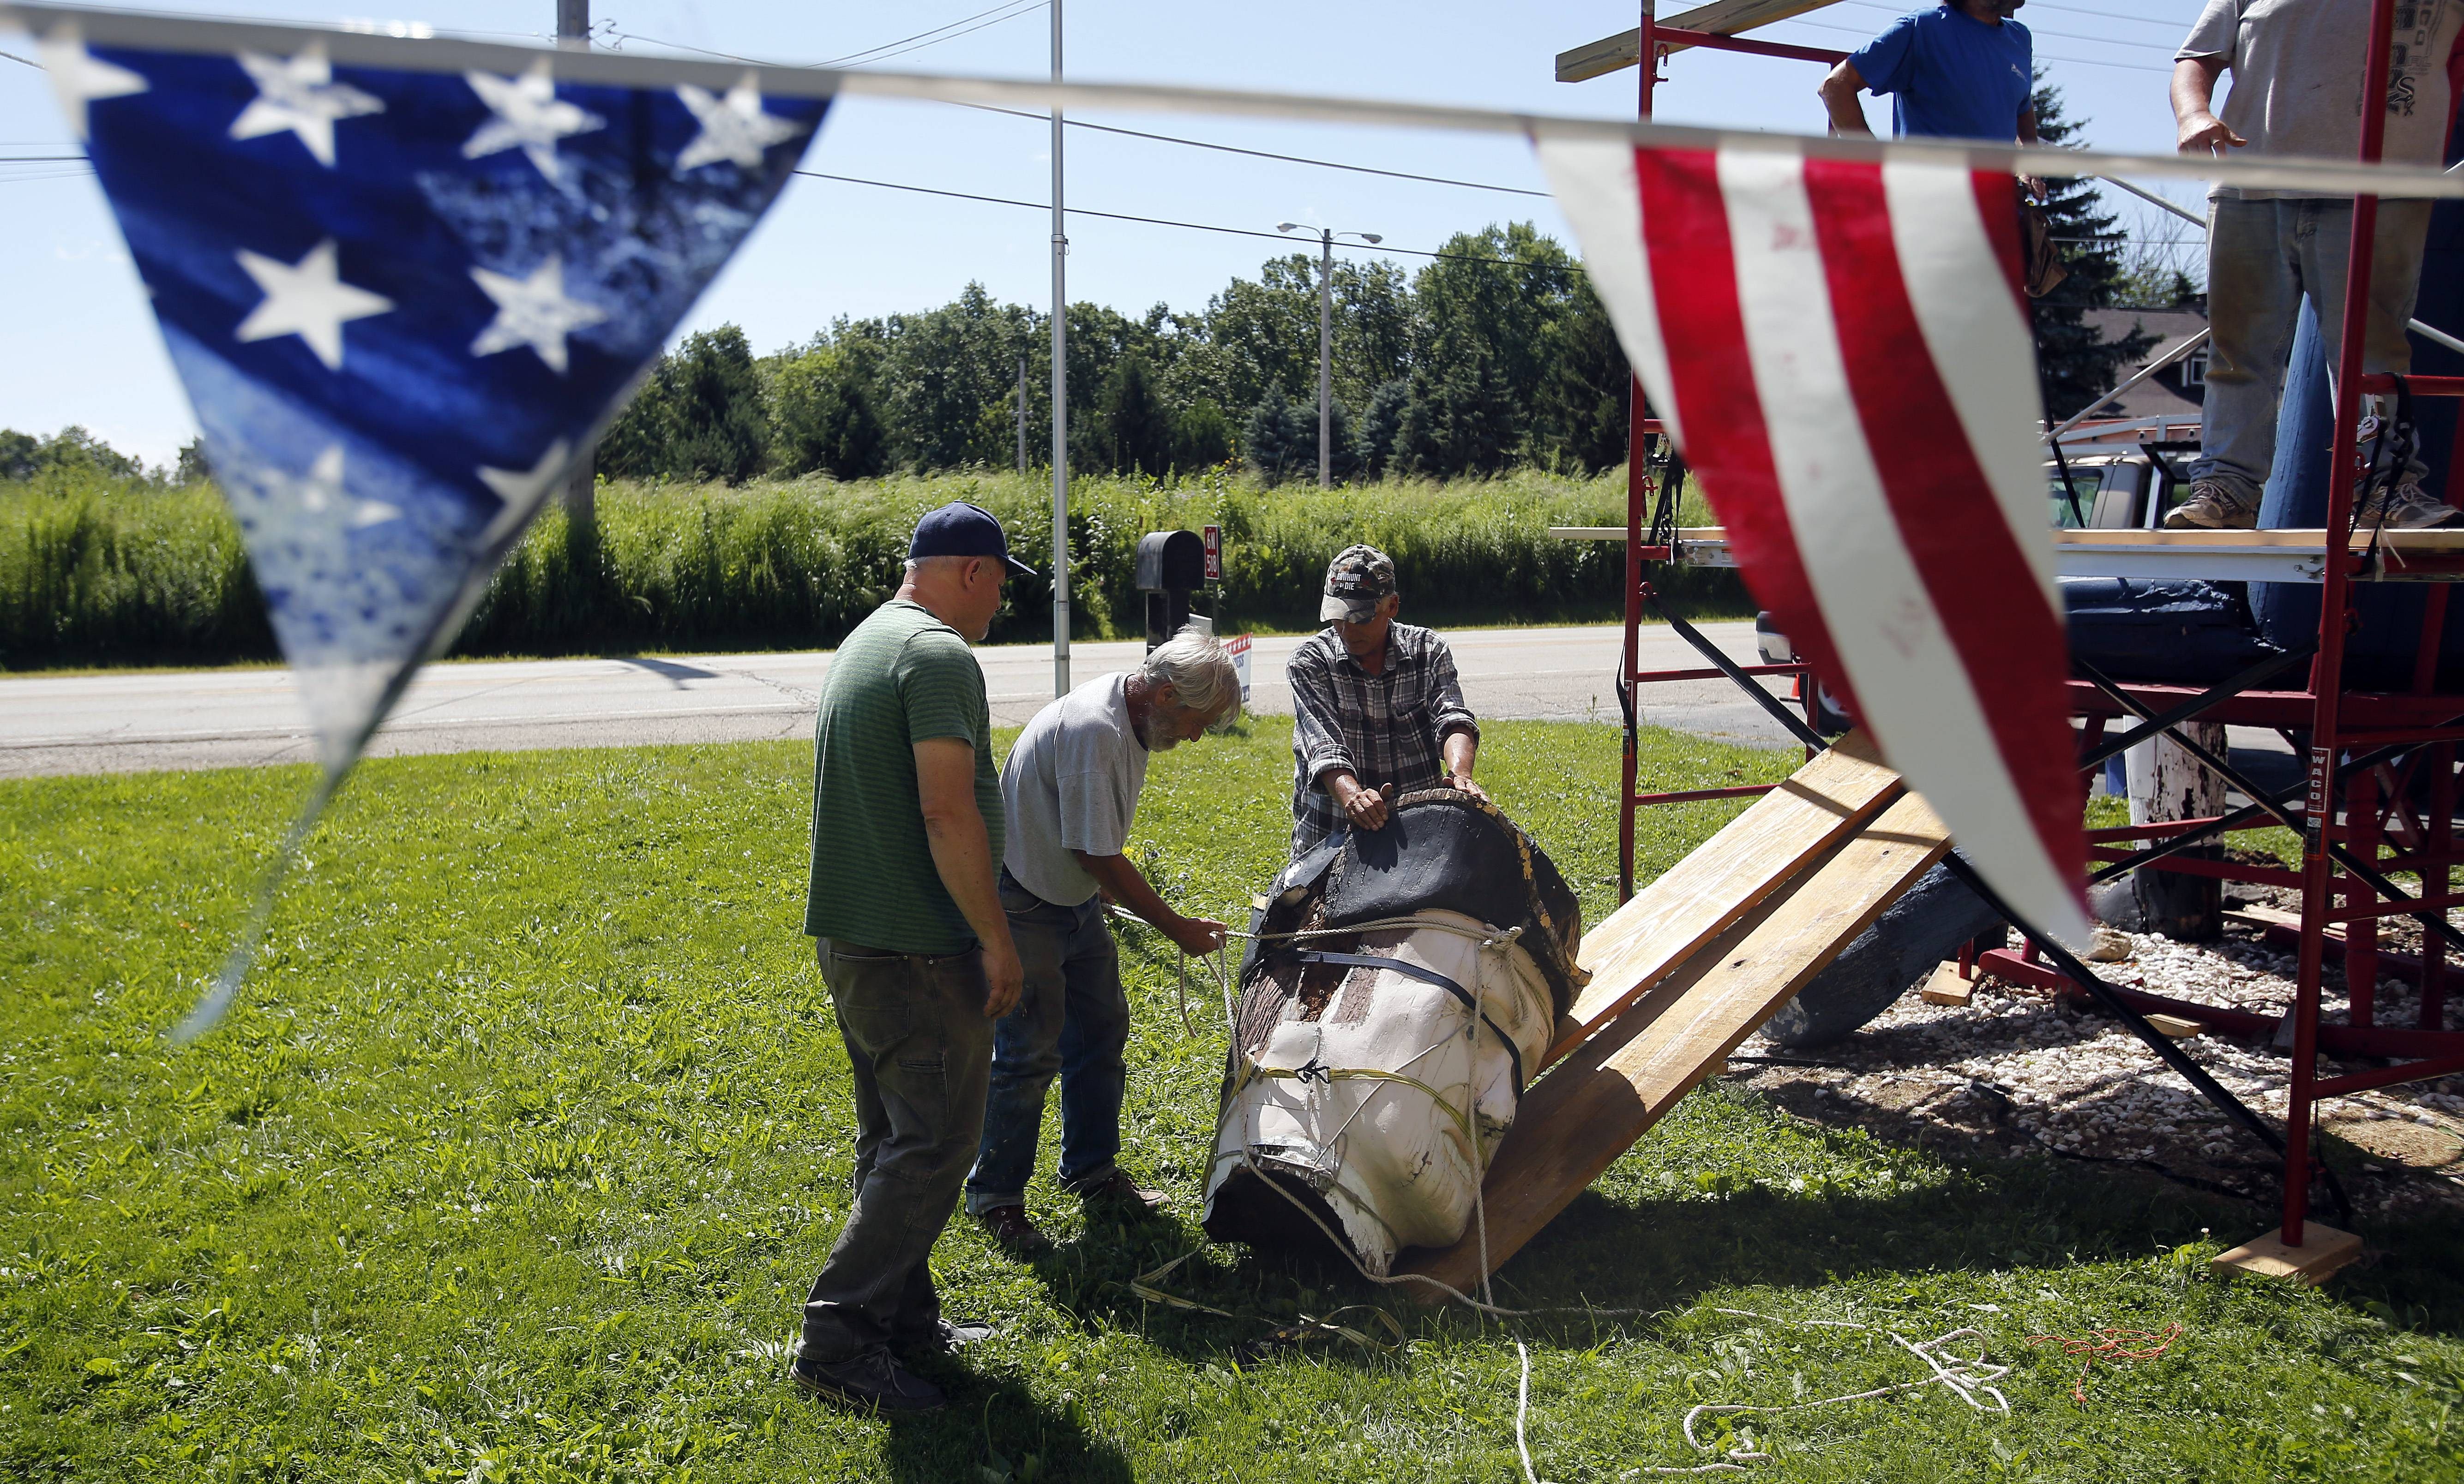 Clint Carey, left, of Pingree Grove has bought the 25-foot-tall wood sculpture of Revolutionary War soldier that's been on display since 1976 on the front lawn of Custom Furniture in St. Charles.